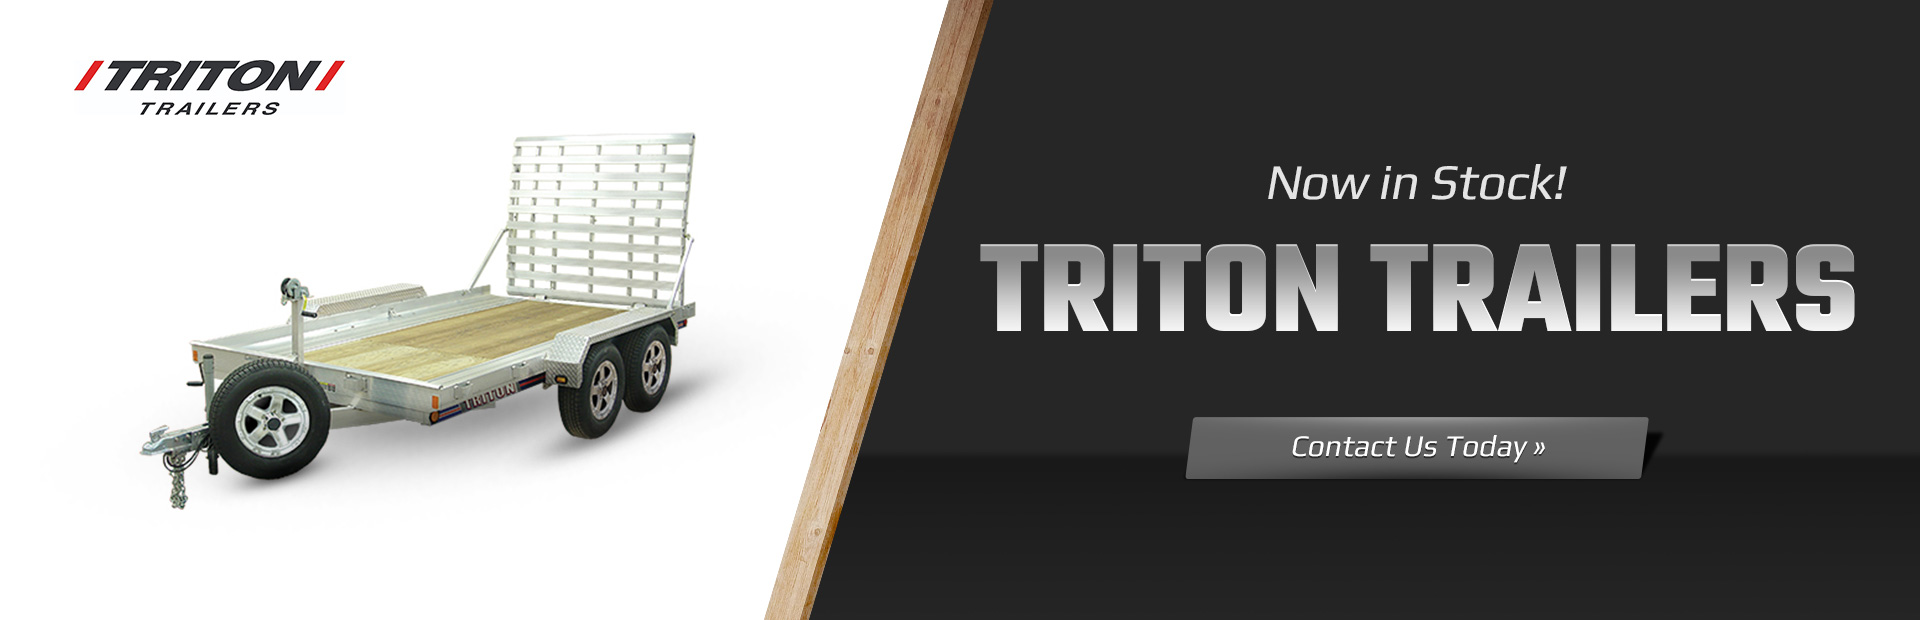 Triton Trailers Now in Stock: Contact us today for details.